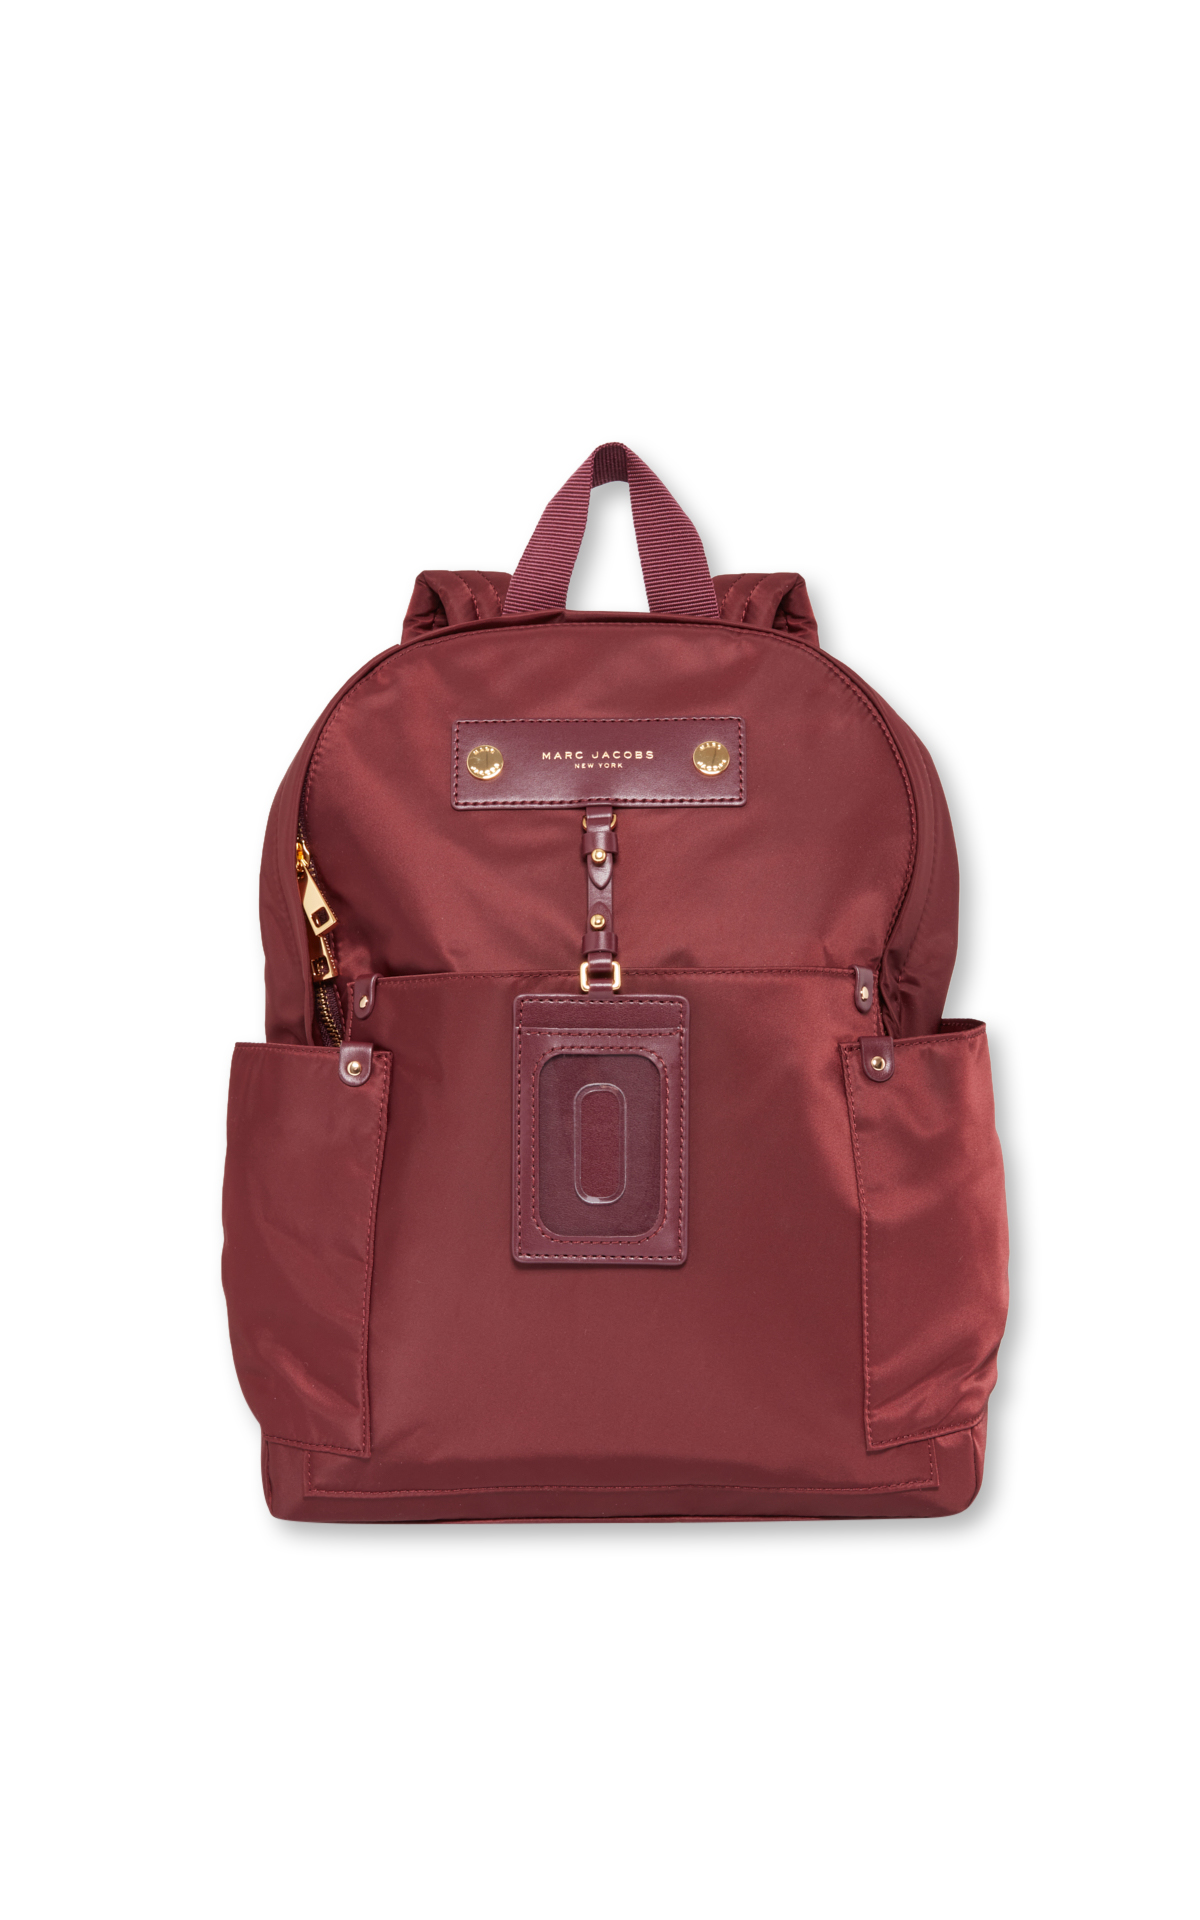 Marc Jacobs Sac à dos Bordeaux